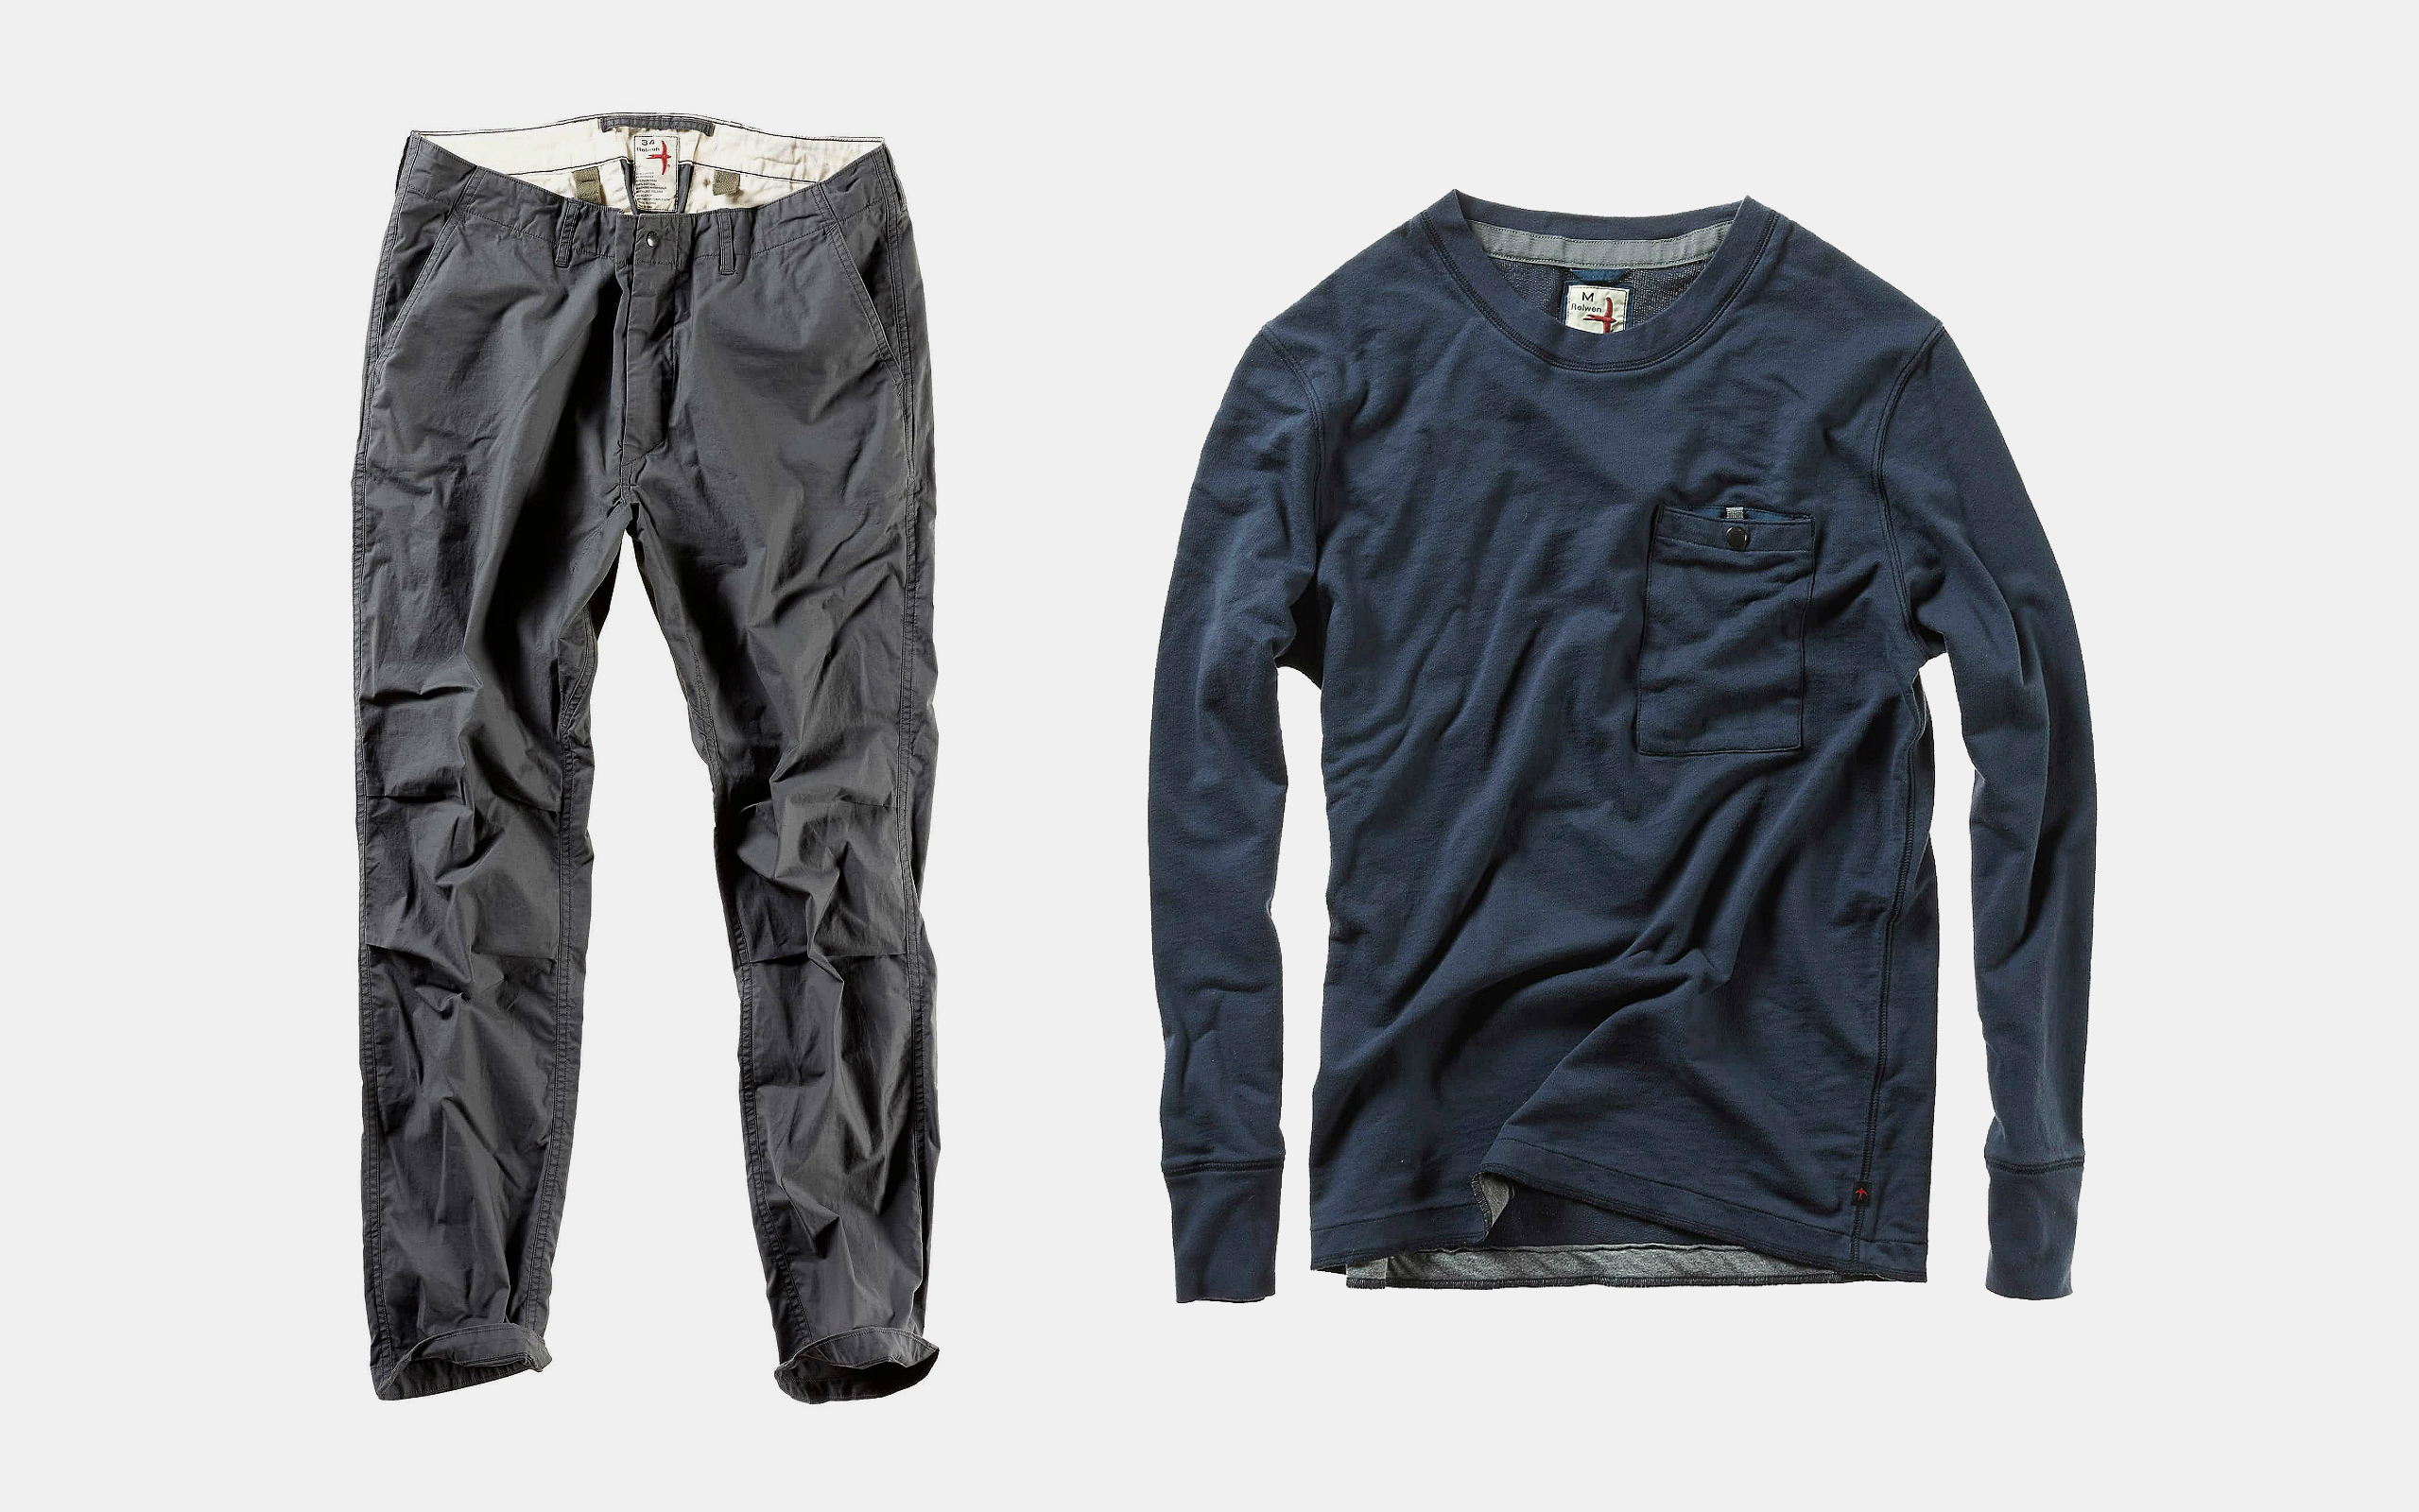 Relwen Menswear Essentials